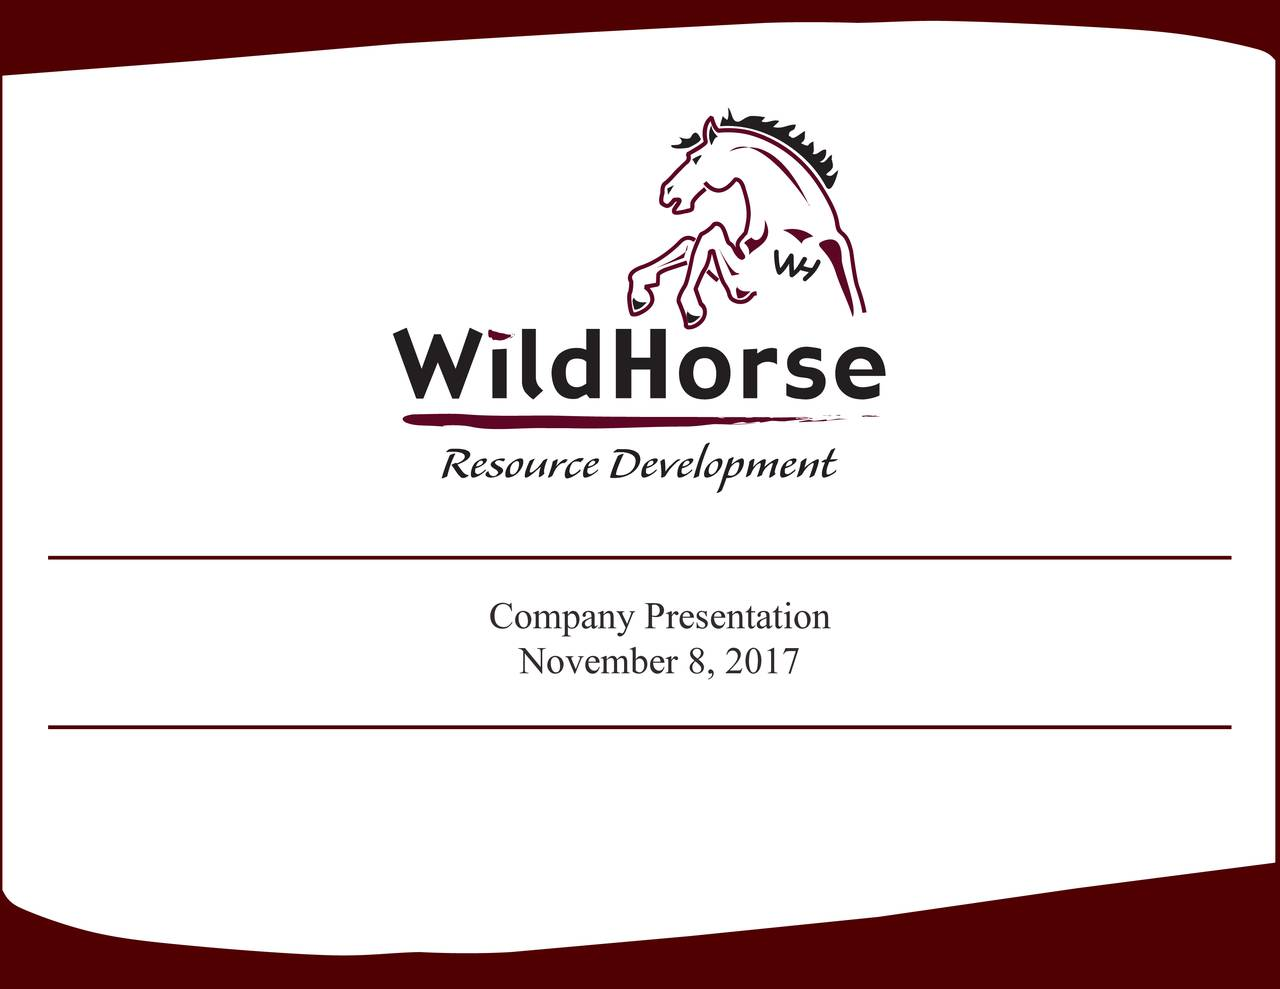 wildhorse chat rooms Start meeting singles in wildhorse today with our free online dating and free wildhorse chat 100% free online dating  wildhorse chat rooms | wildhorse men.